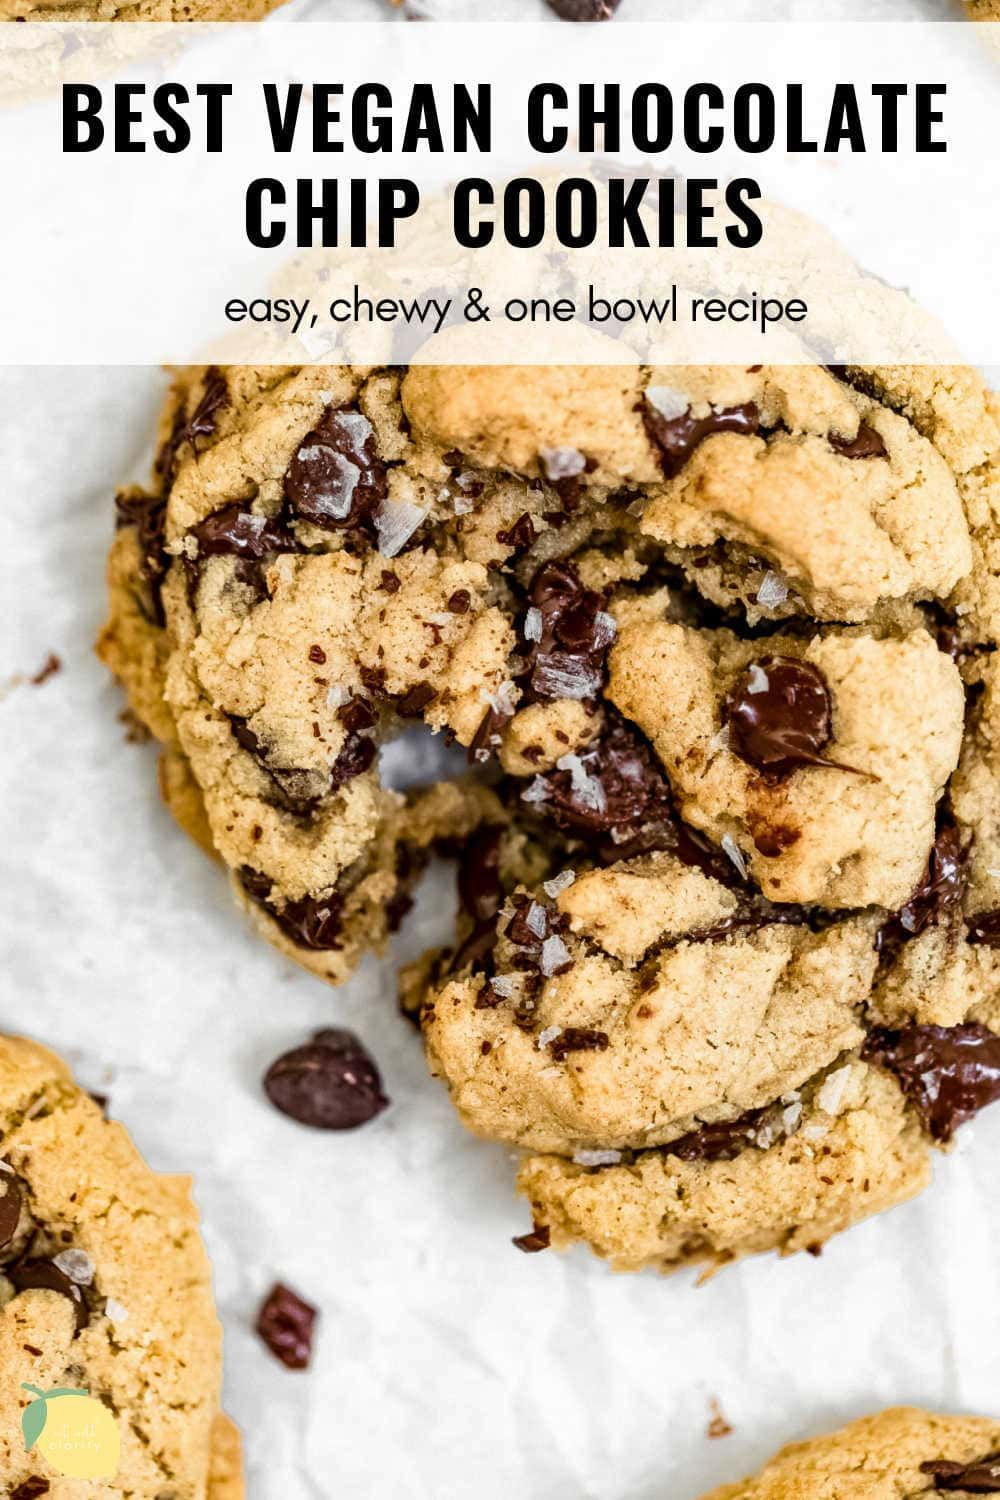 Classic Vegan Chocolate Chip Cookies Eat With Clarity Recipe In 2020 Vegan Chocolate Chip Cookie Recipe Vegan Chocolate Chip Cookies Simple Chocolate Chip Cookie Recipe